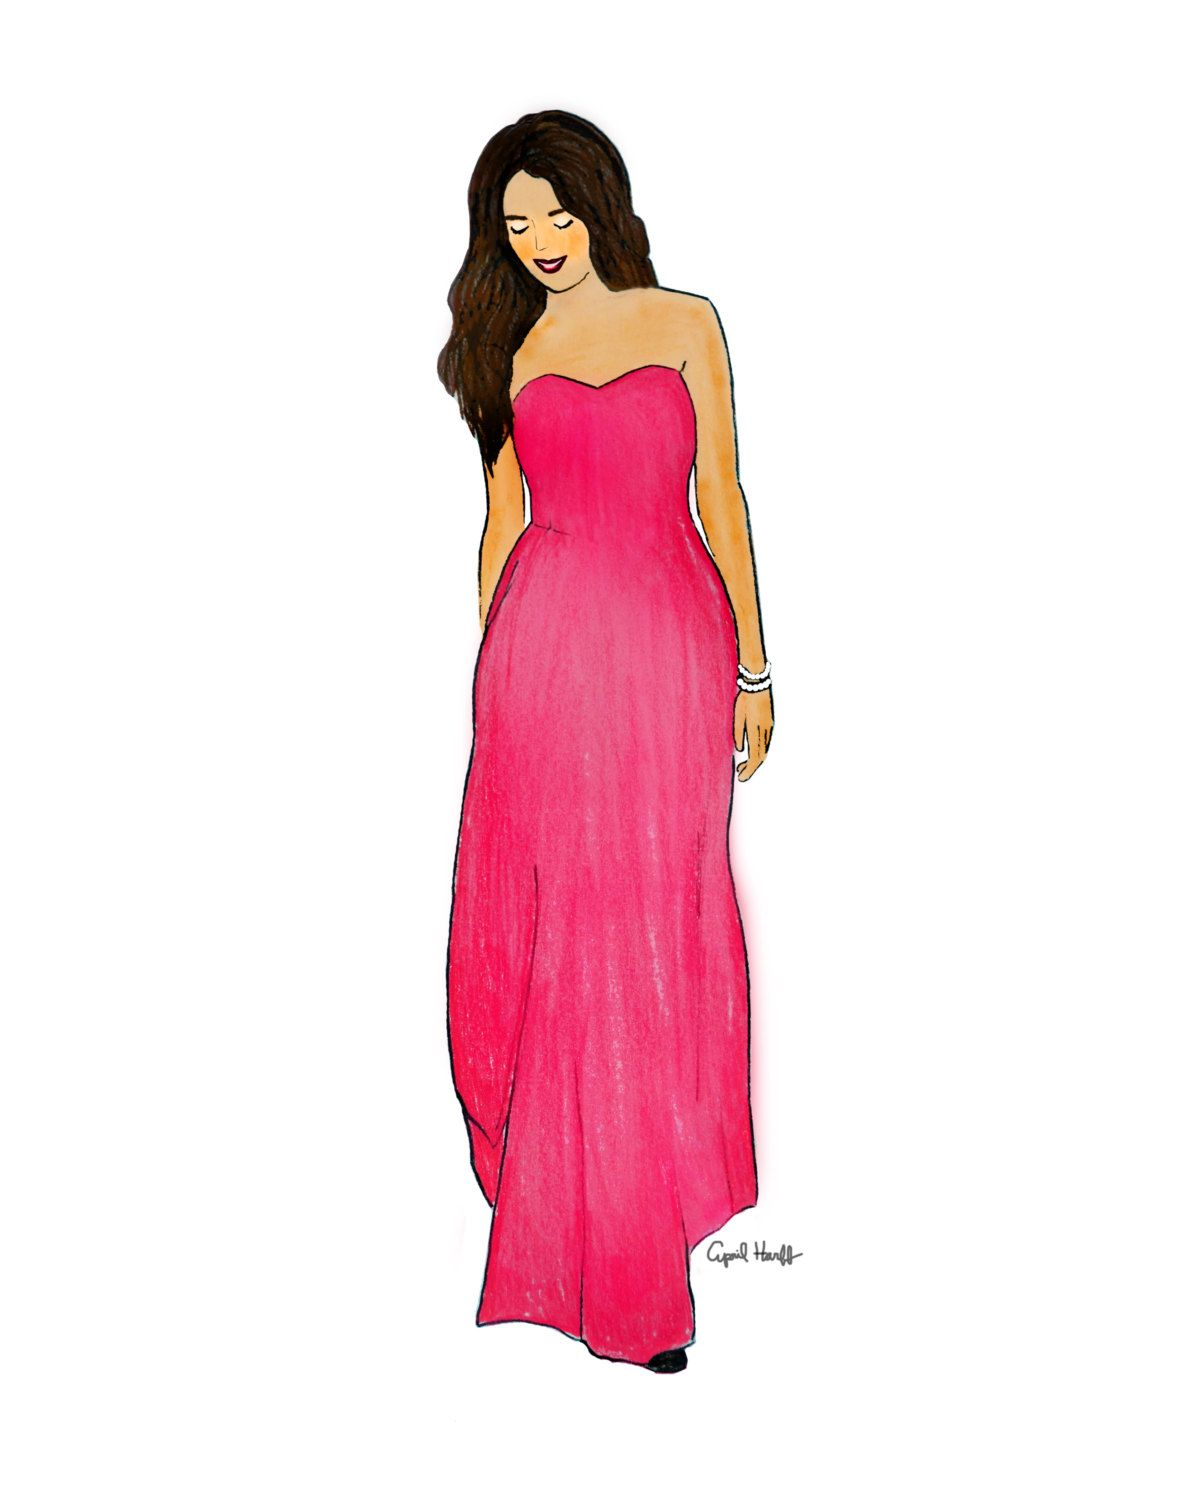 Pink dress illustration  Pretty In Pink Dress Print Fashion Illustration by aprilmarionART